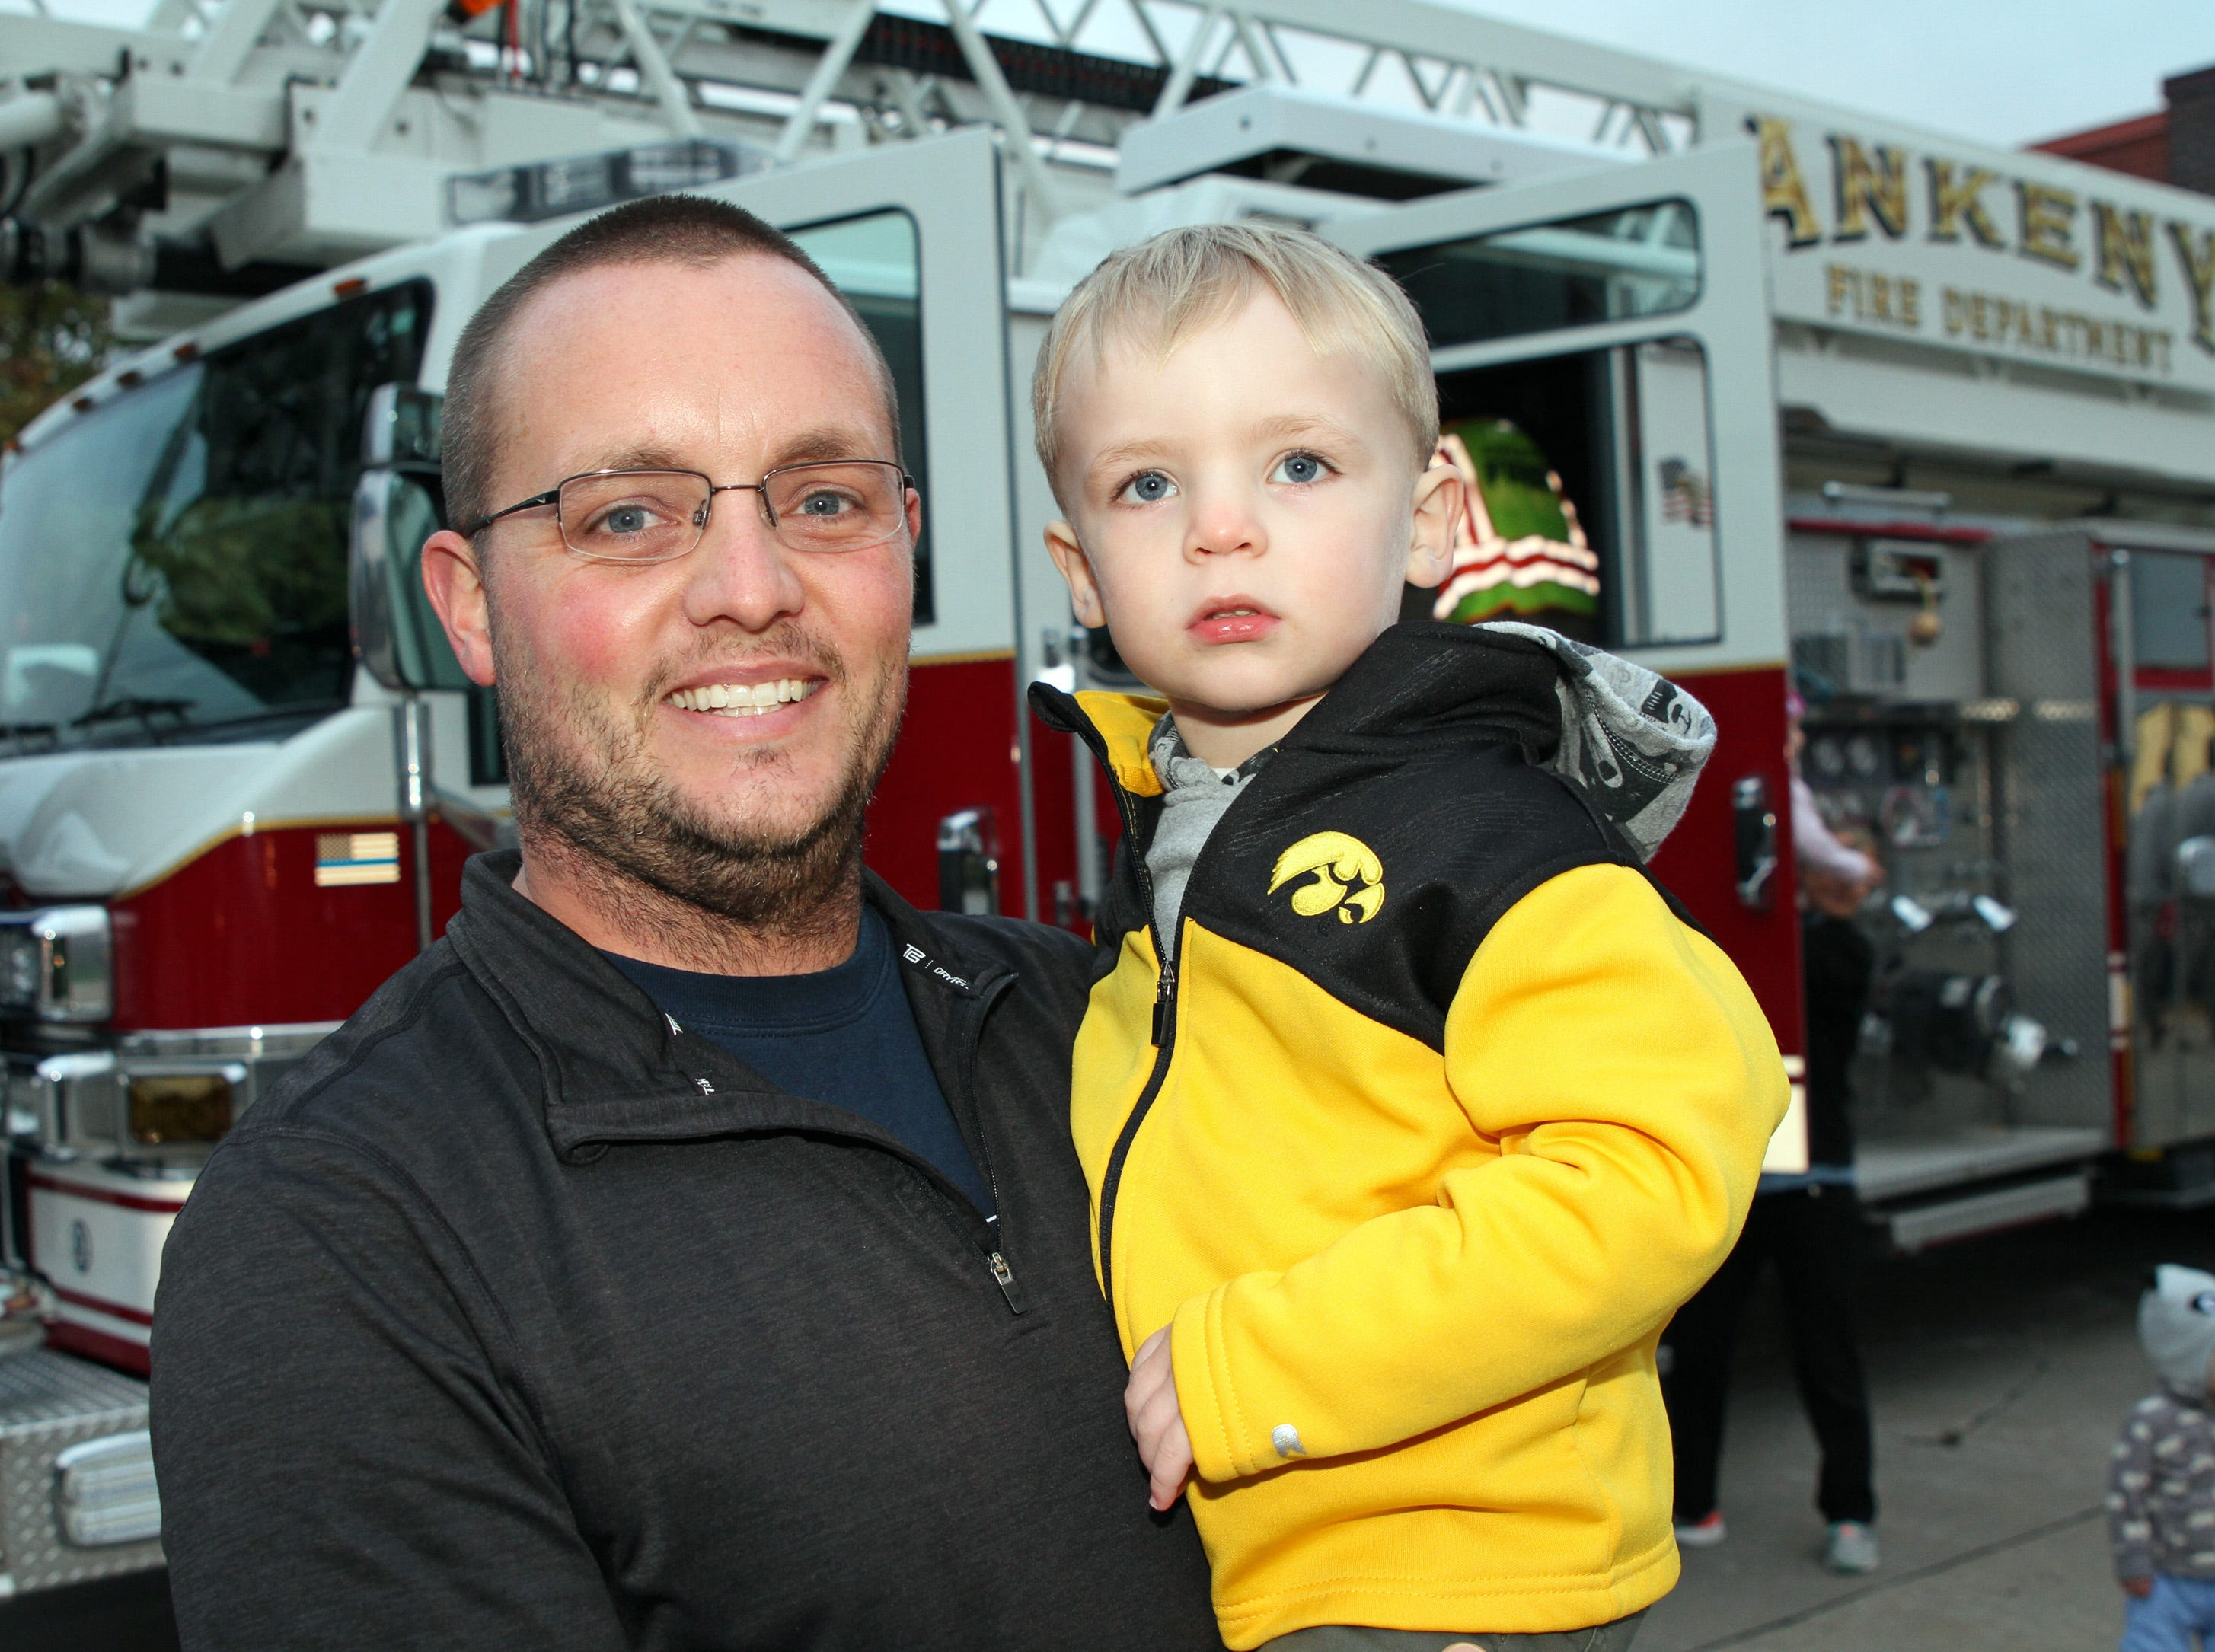 Scott and Callen Weinheimer, 2, of Ankeny enjoy the fire trucks on display during the Ankeny Fire Department's Fire Prevention Week Open House on Wednesday,  Oct. 10, 2018 at Fire Station #1, 120 N.W. Ash Dr in Ankeny.